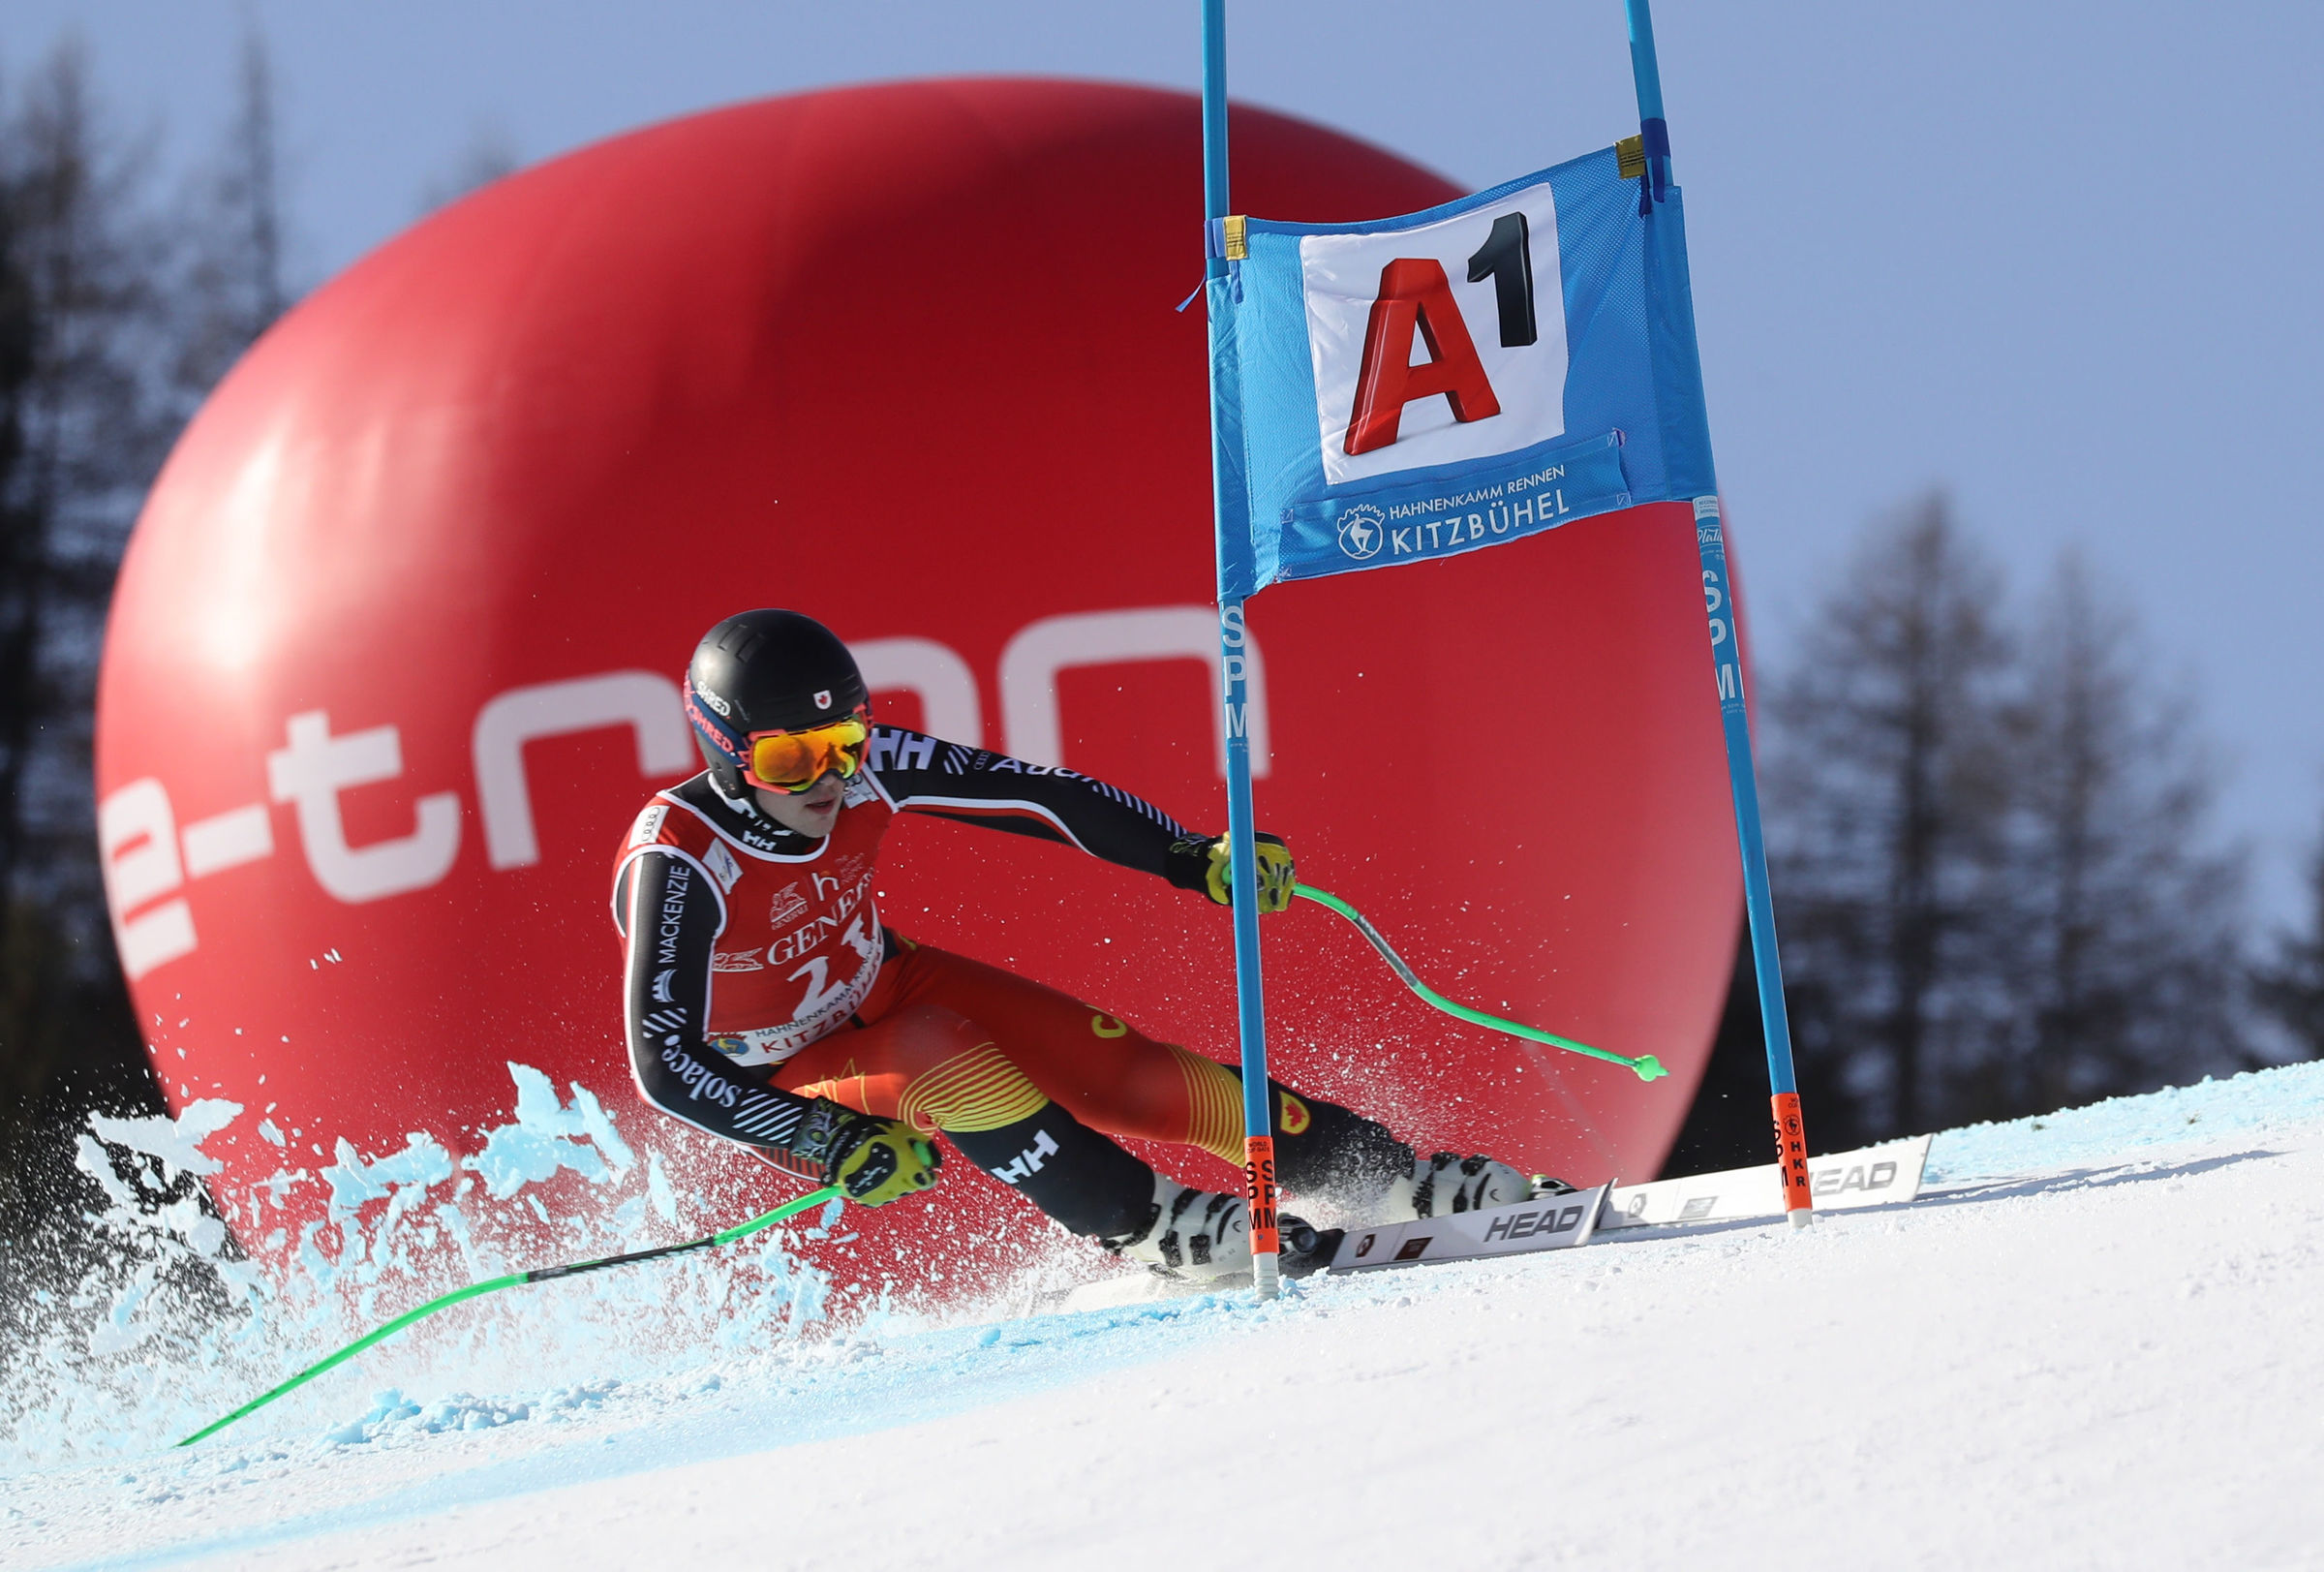 AUDI FIS SKI World Cup 2019/20